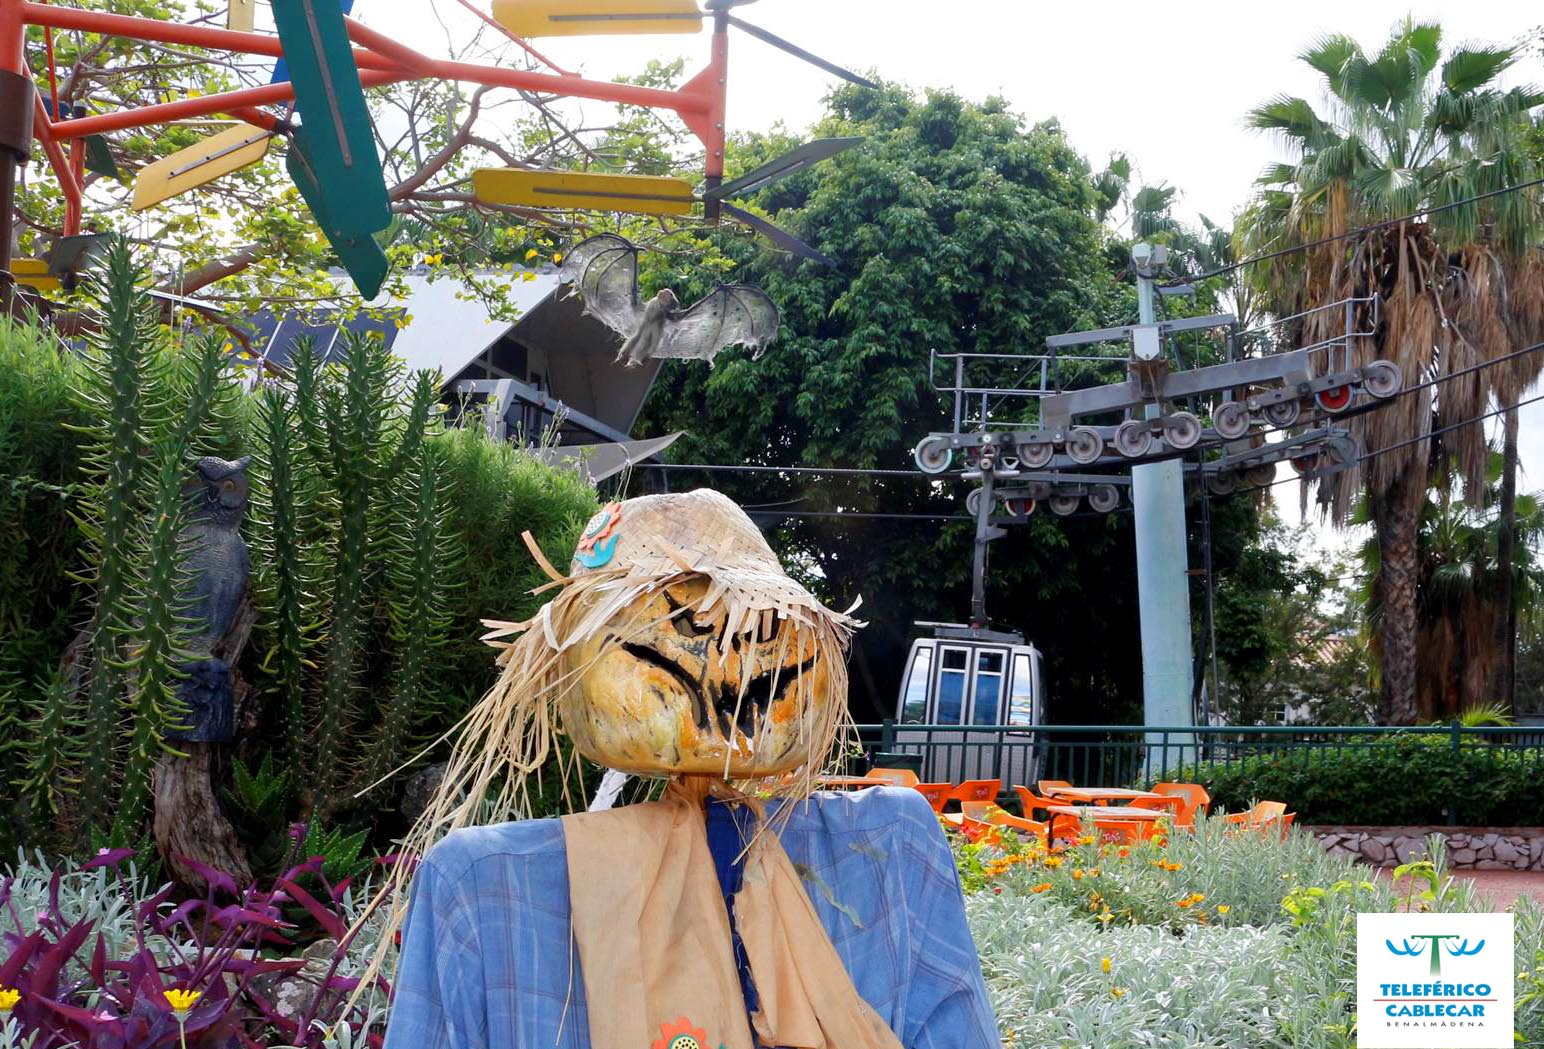 BENALMÁDENA CABLECAR SUGGEST YOU A SCARY FUN THIS HALLOWEEN!